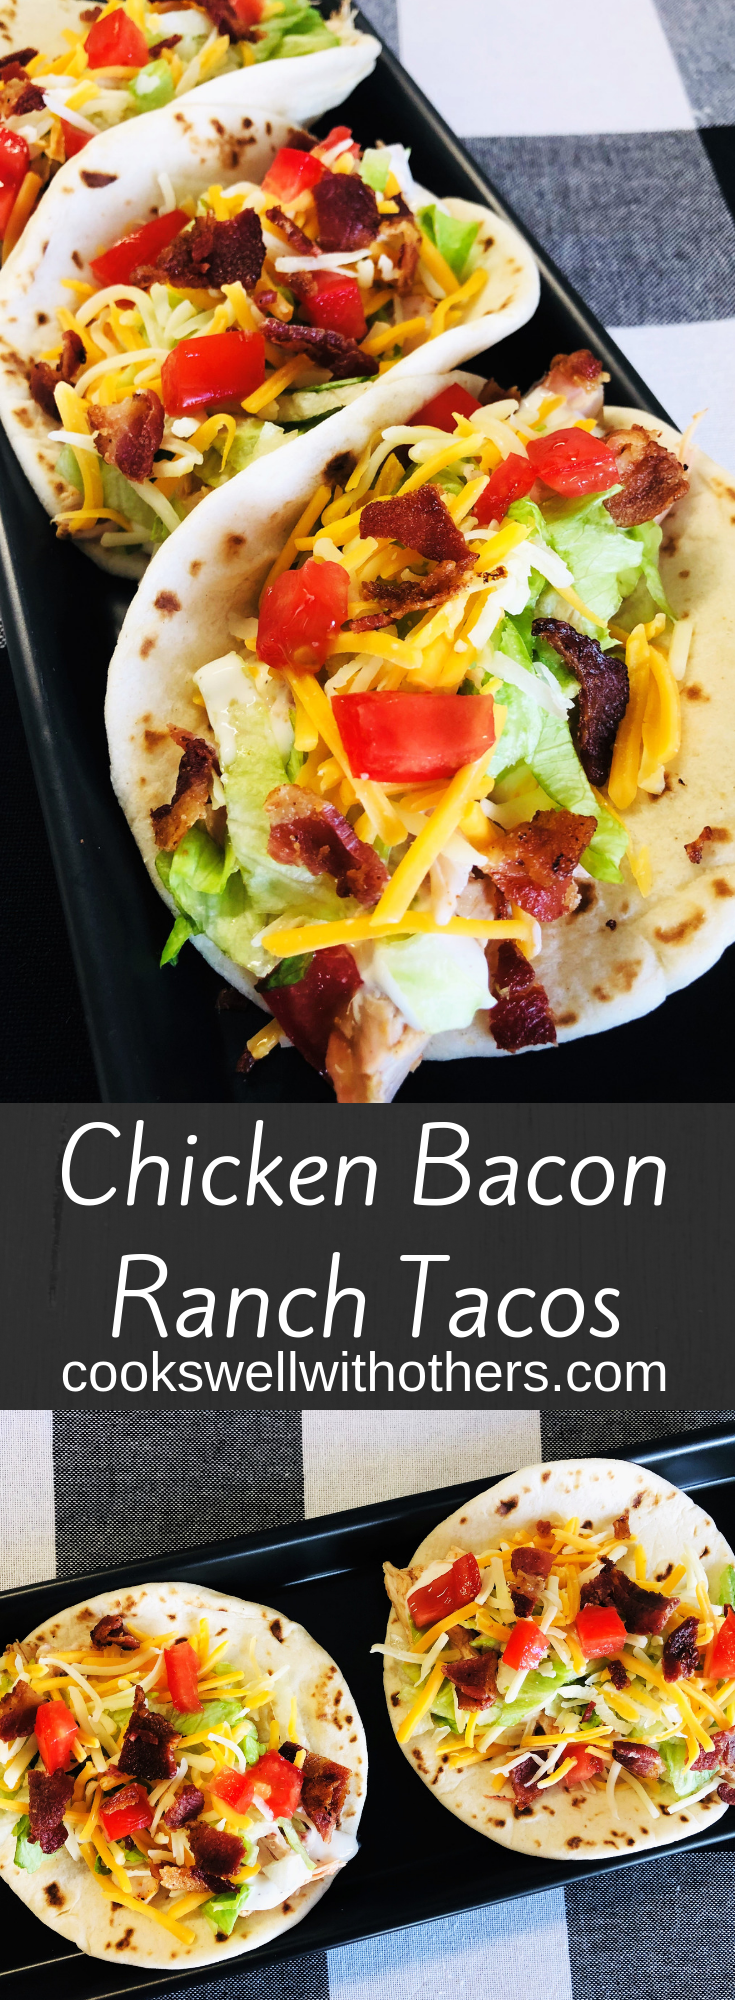 Chicken Bacon Ranch Tacos #quickeasydinners